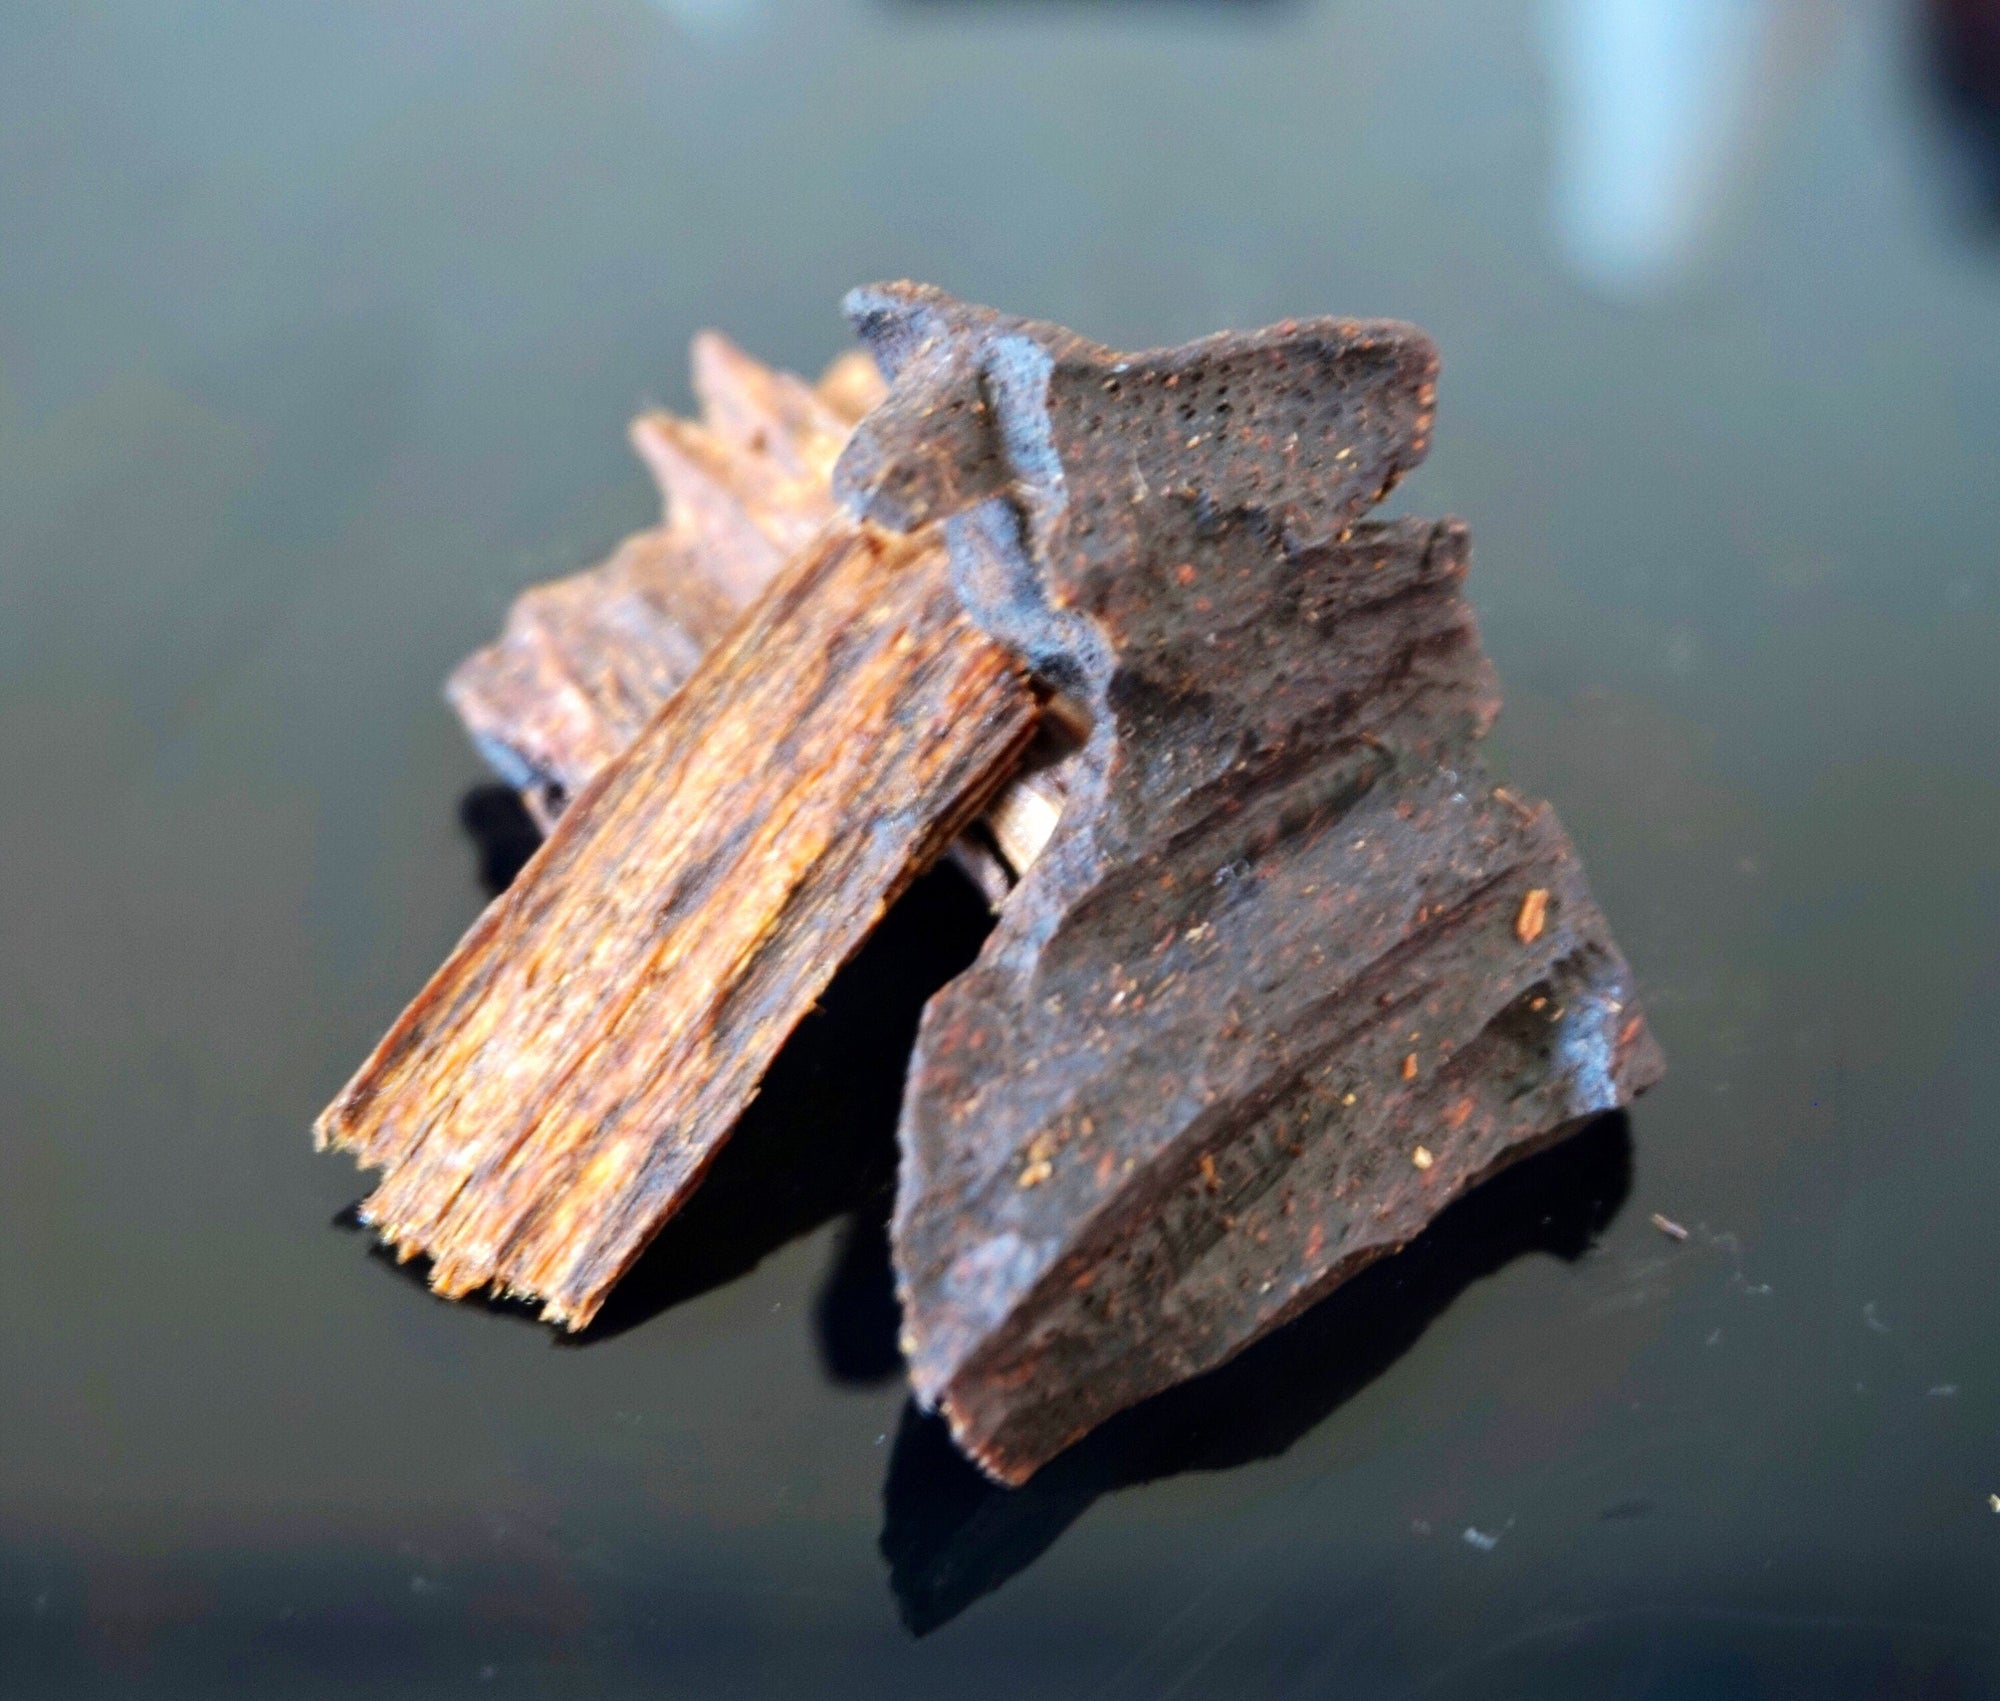 Bakhoor Royal Burma Oud agarwood, oudh, incense, burning, scent, bakhoor, bukhoor, dukhoon, bakhoor burner, incense wood